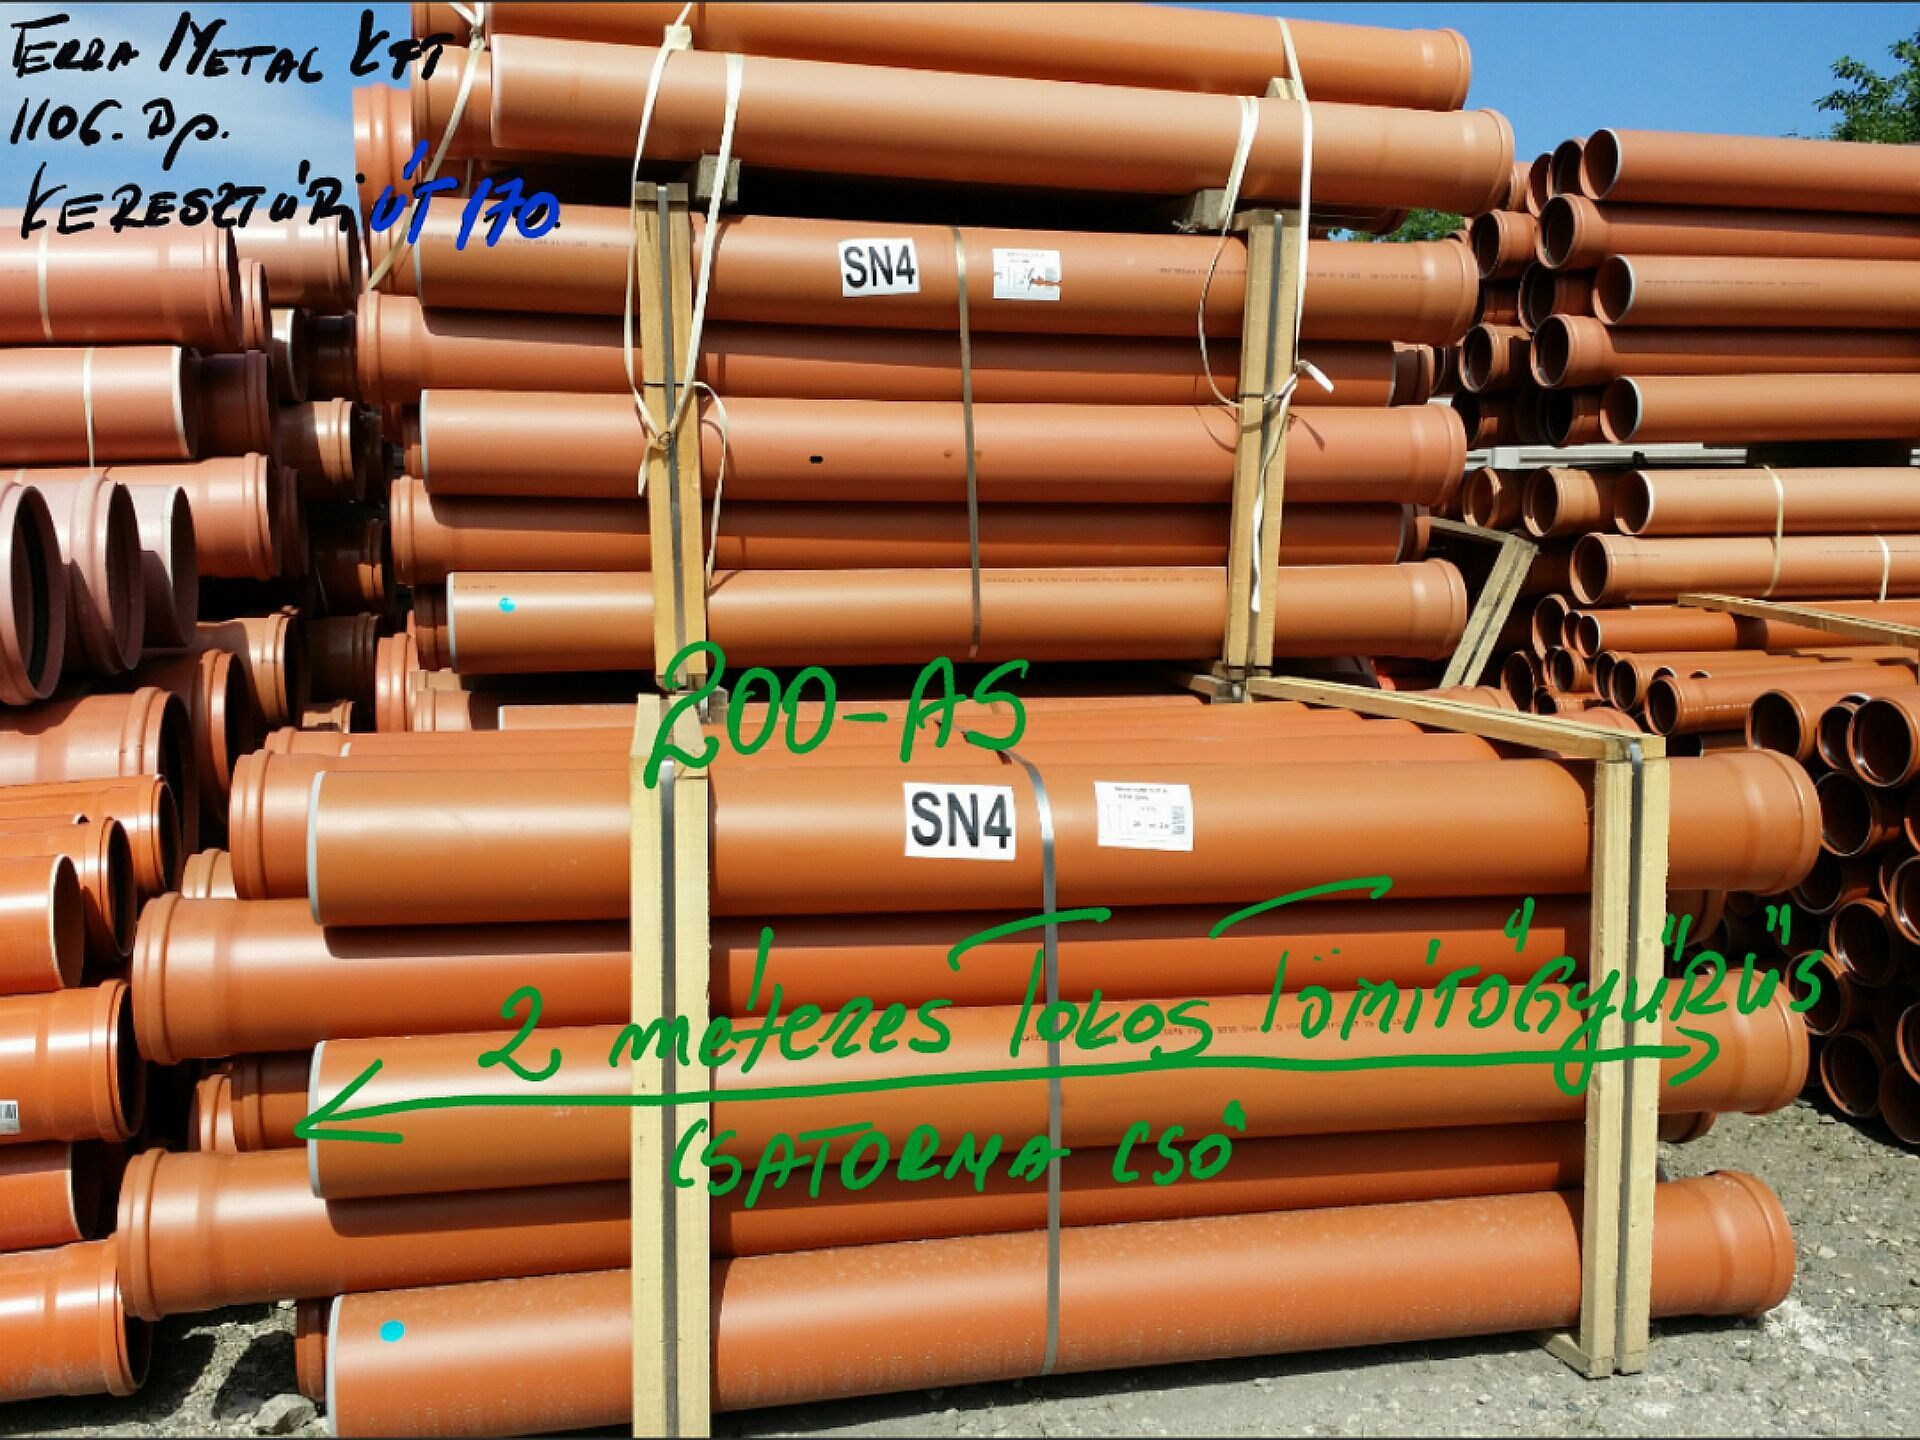 200 as multilayer sn4 csatorna pvc cso